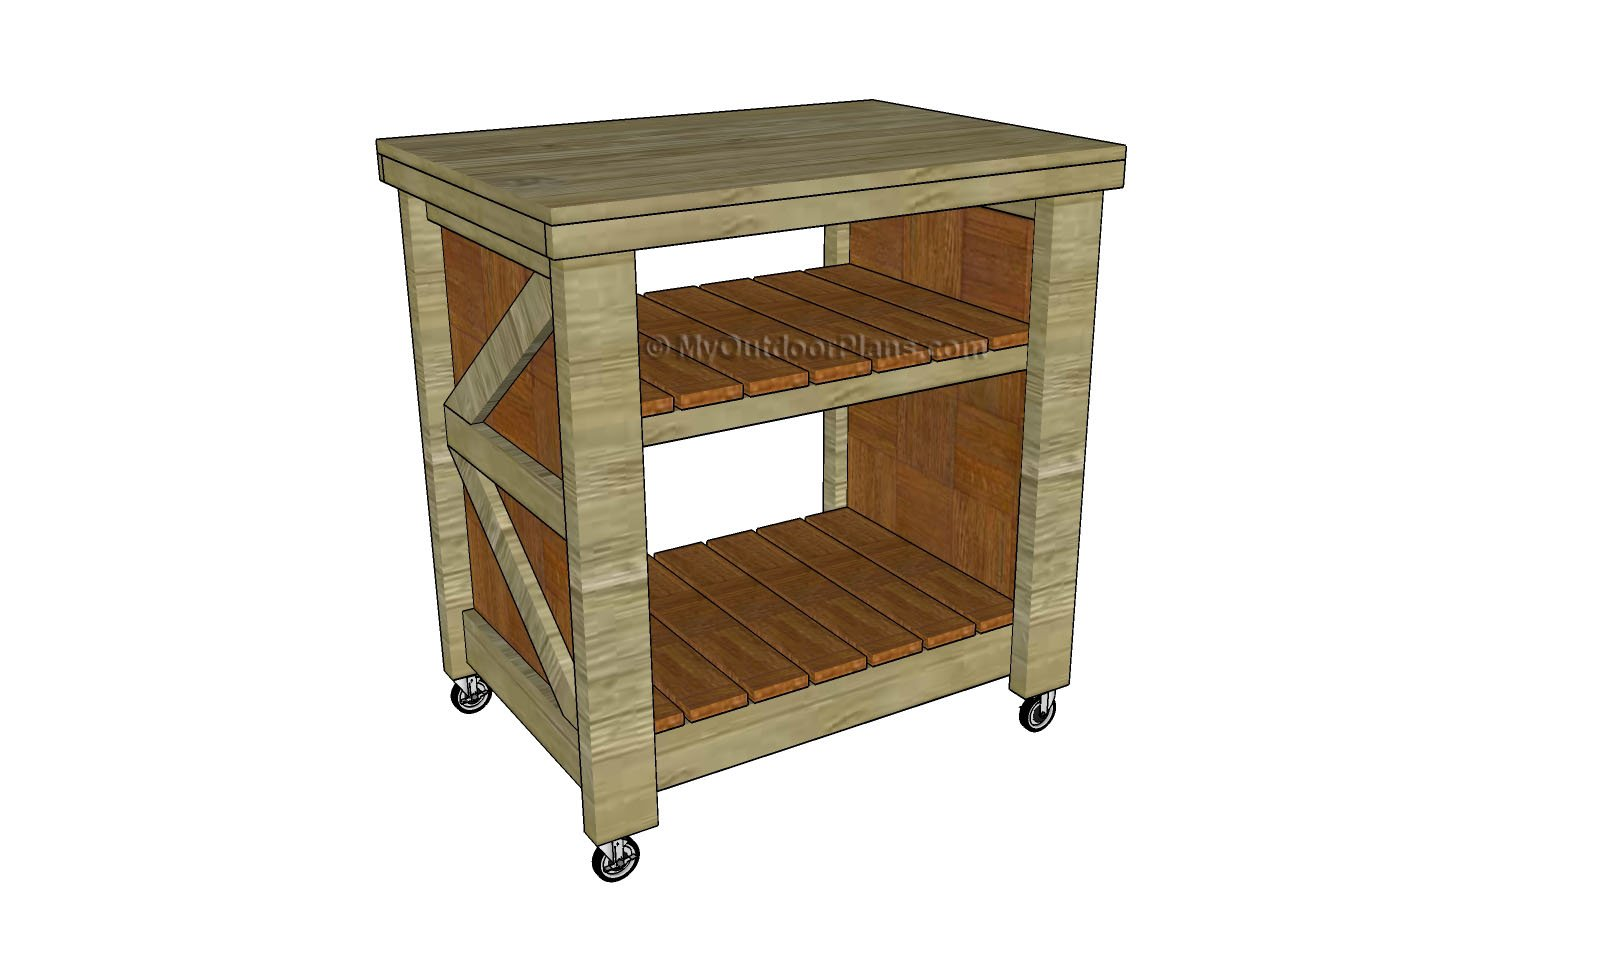 Small Kitchen Island Plans Free Outdoor Plans Diy Shed Wooden Playhouse Bbq Woodworking